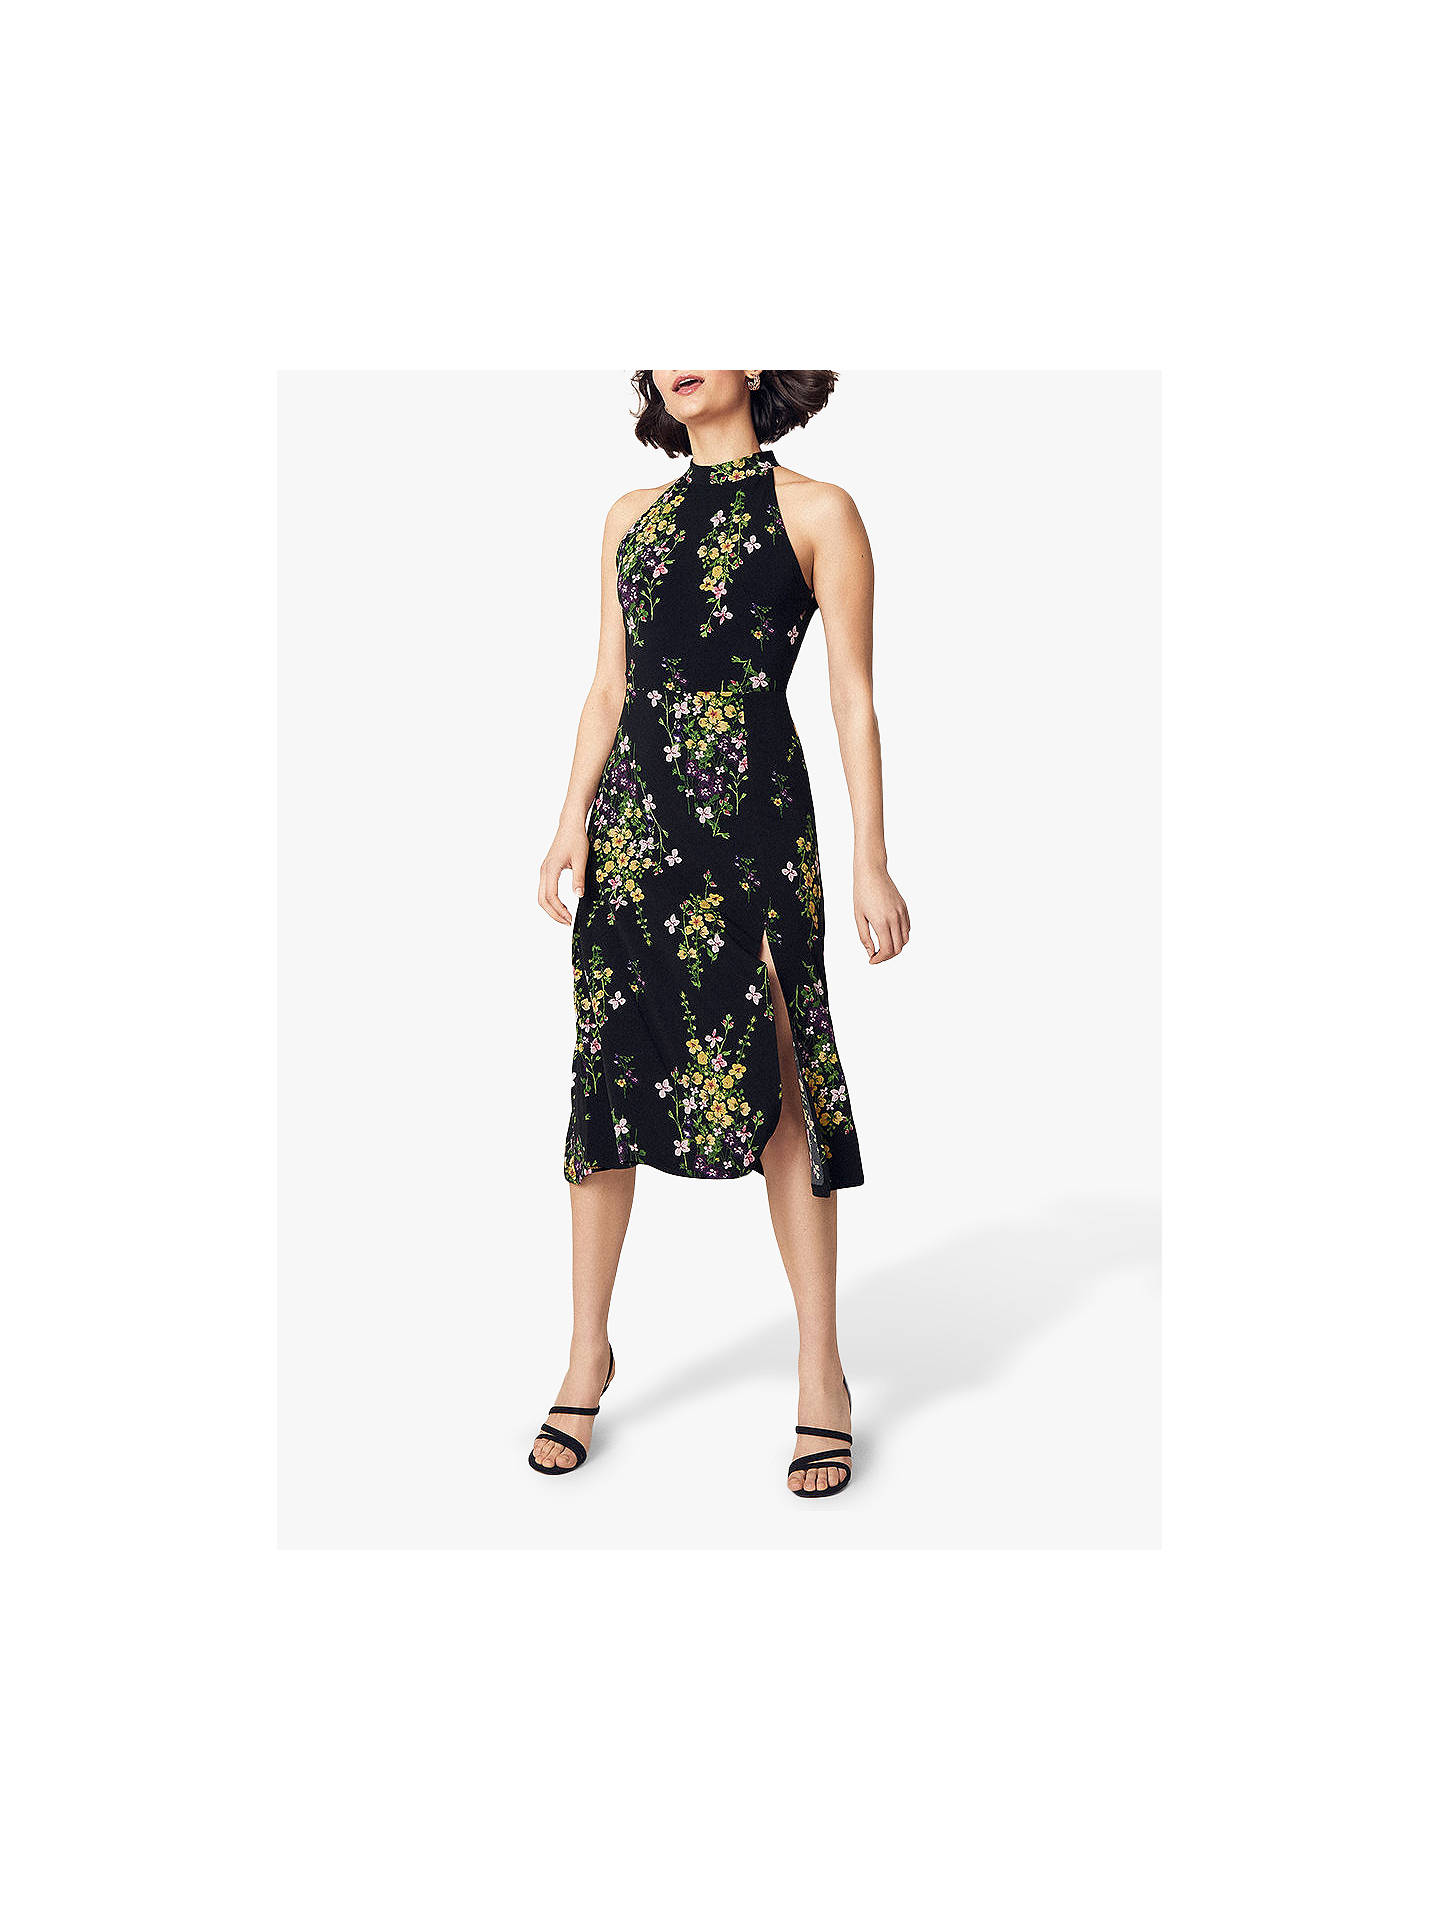 7888334997a6 Buy Oasis Flower Bunch Midi Dress, Multi/Black, XS Online at johnlewis.